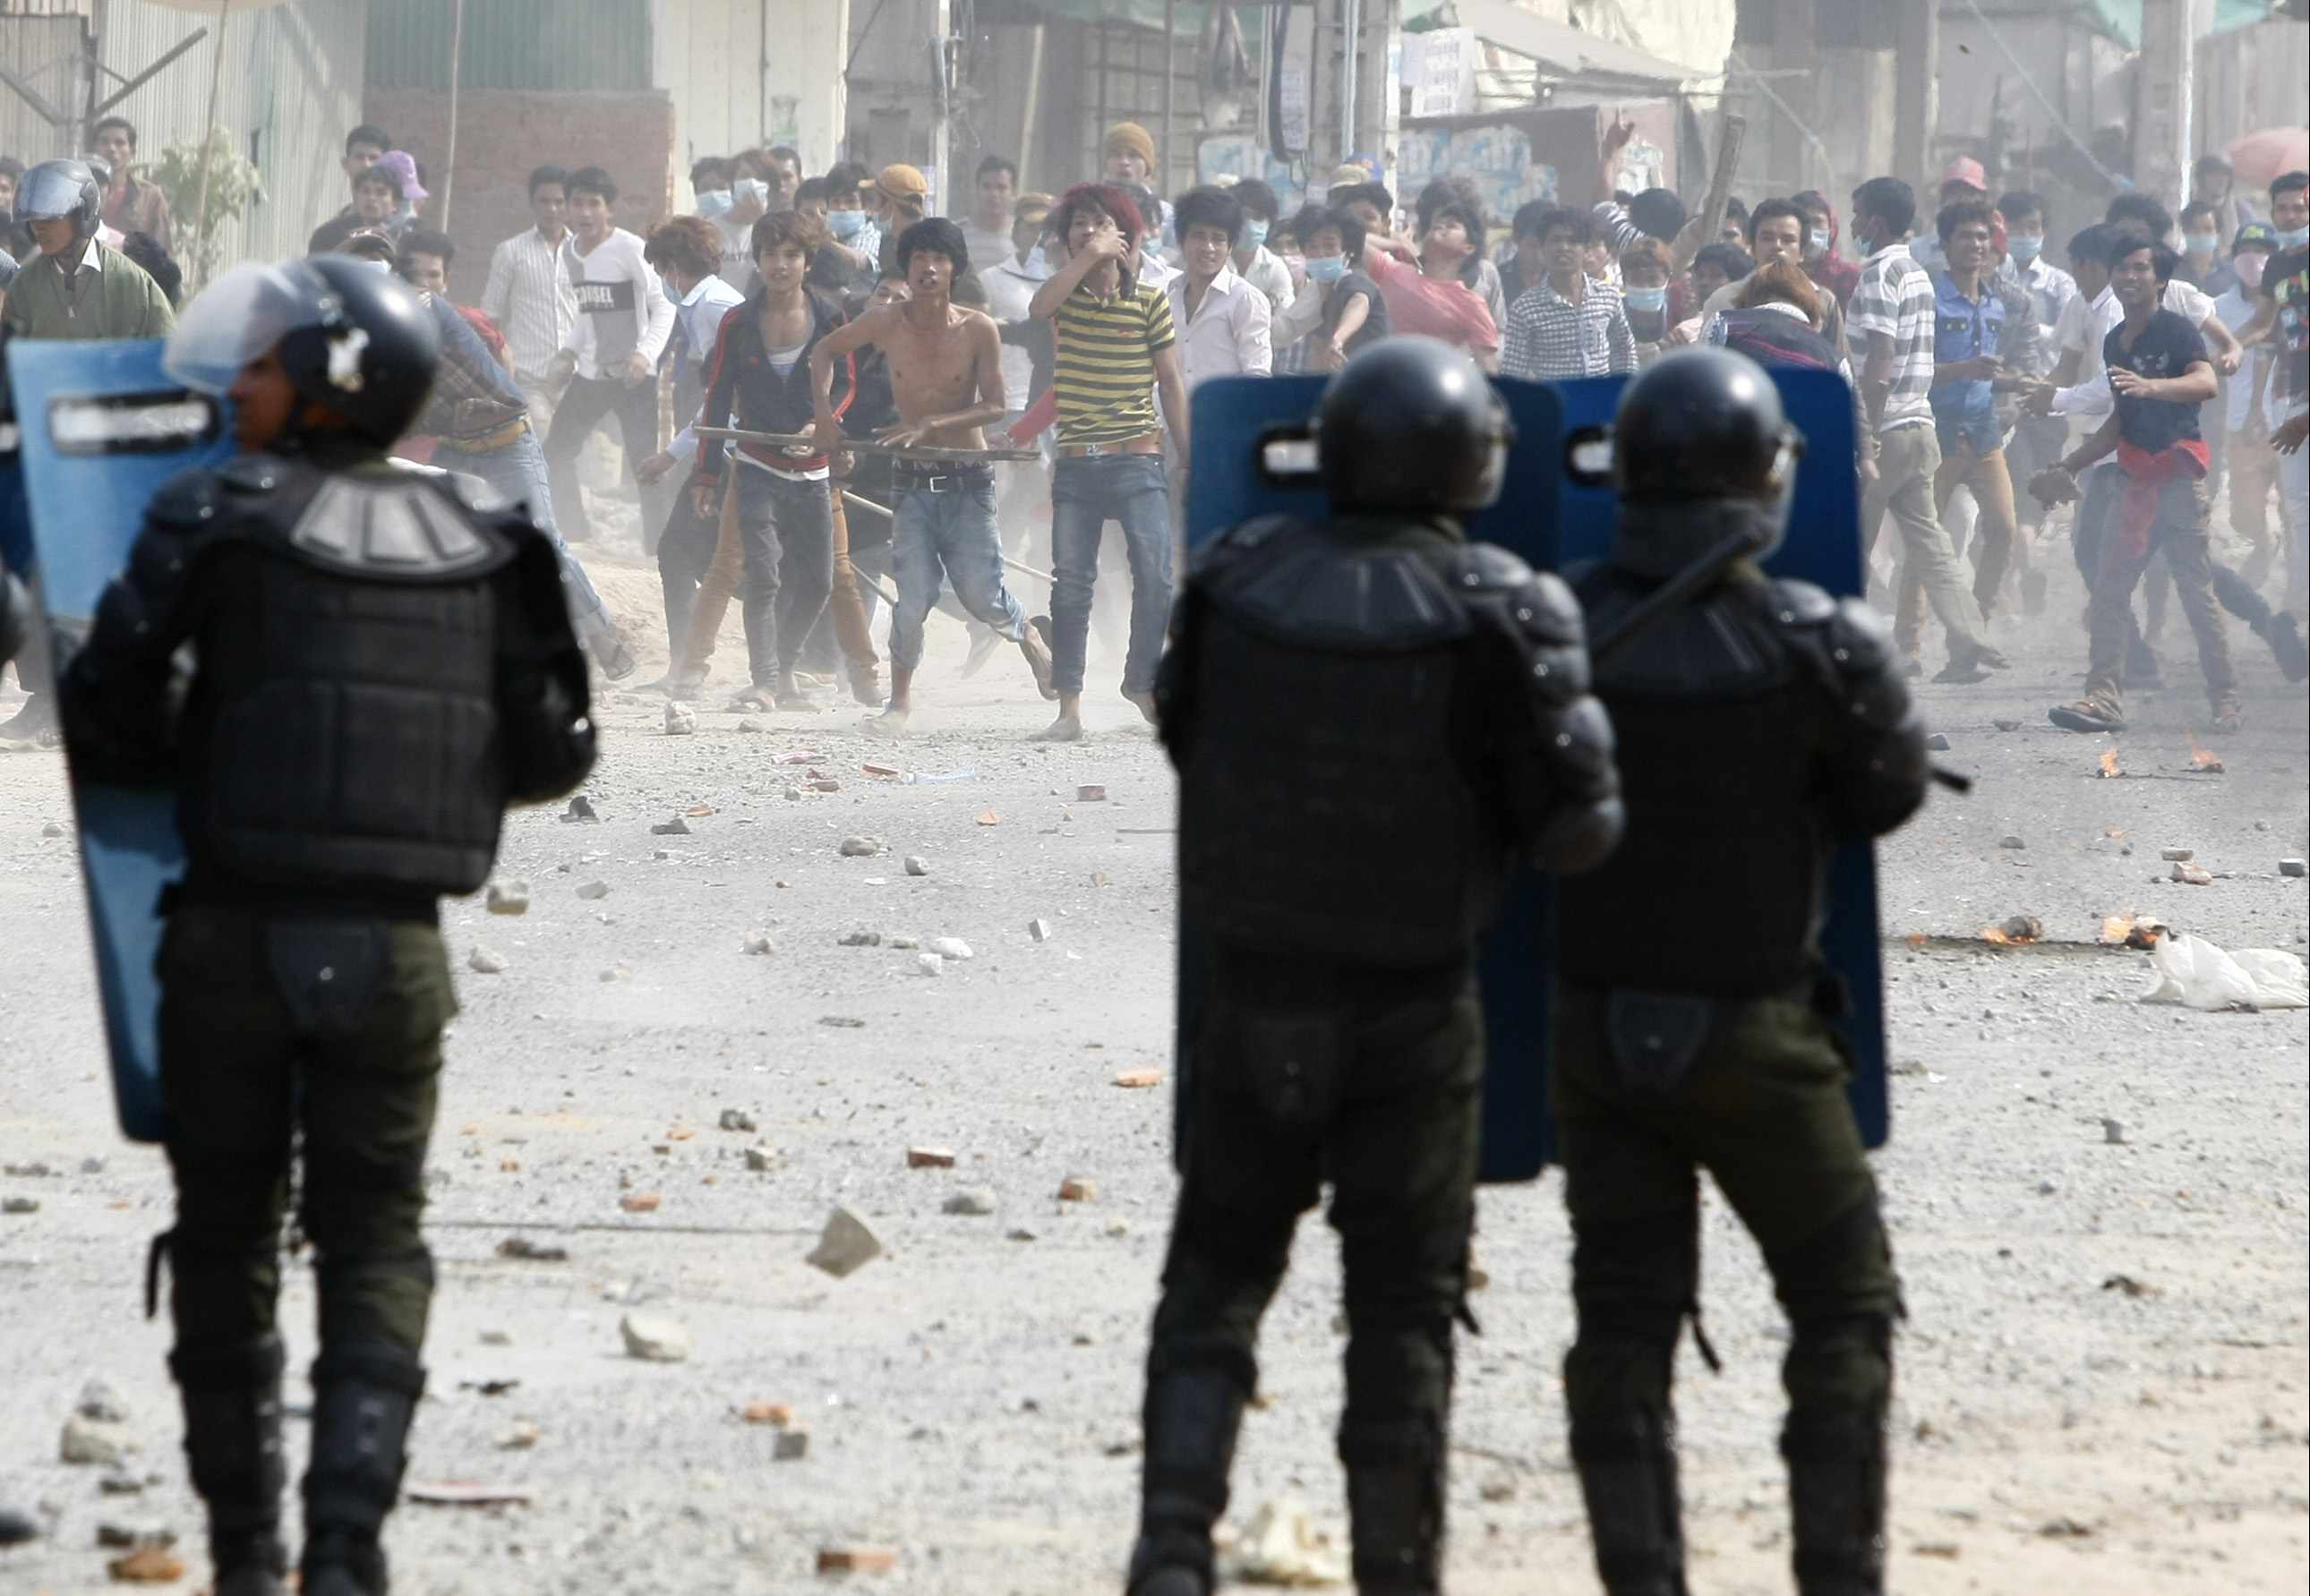 Cambodia garment workers throw stones at riot police during a strike near a factory on the Stung Meanchey complex on the outskirts of Phnom Penh, Cambodia, Friday, Jan. 3, 2014. At least three people were killed Friday when police in Cambodia opened fire to break up a protest by striking garment workers demanding a doubling of the minimum wage, police and human rights workers said.(AP Photo/Heng Sinith)